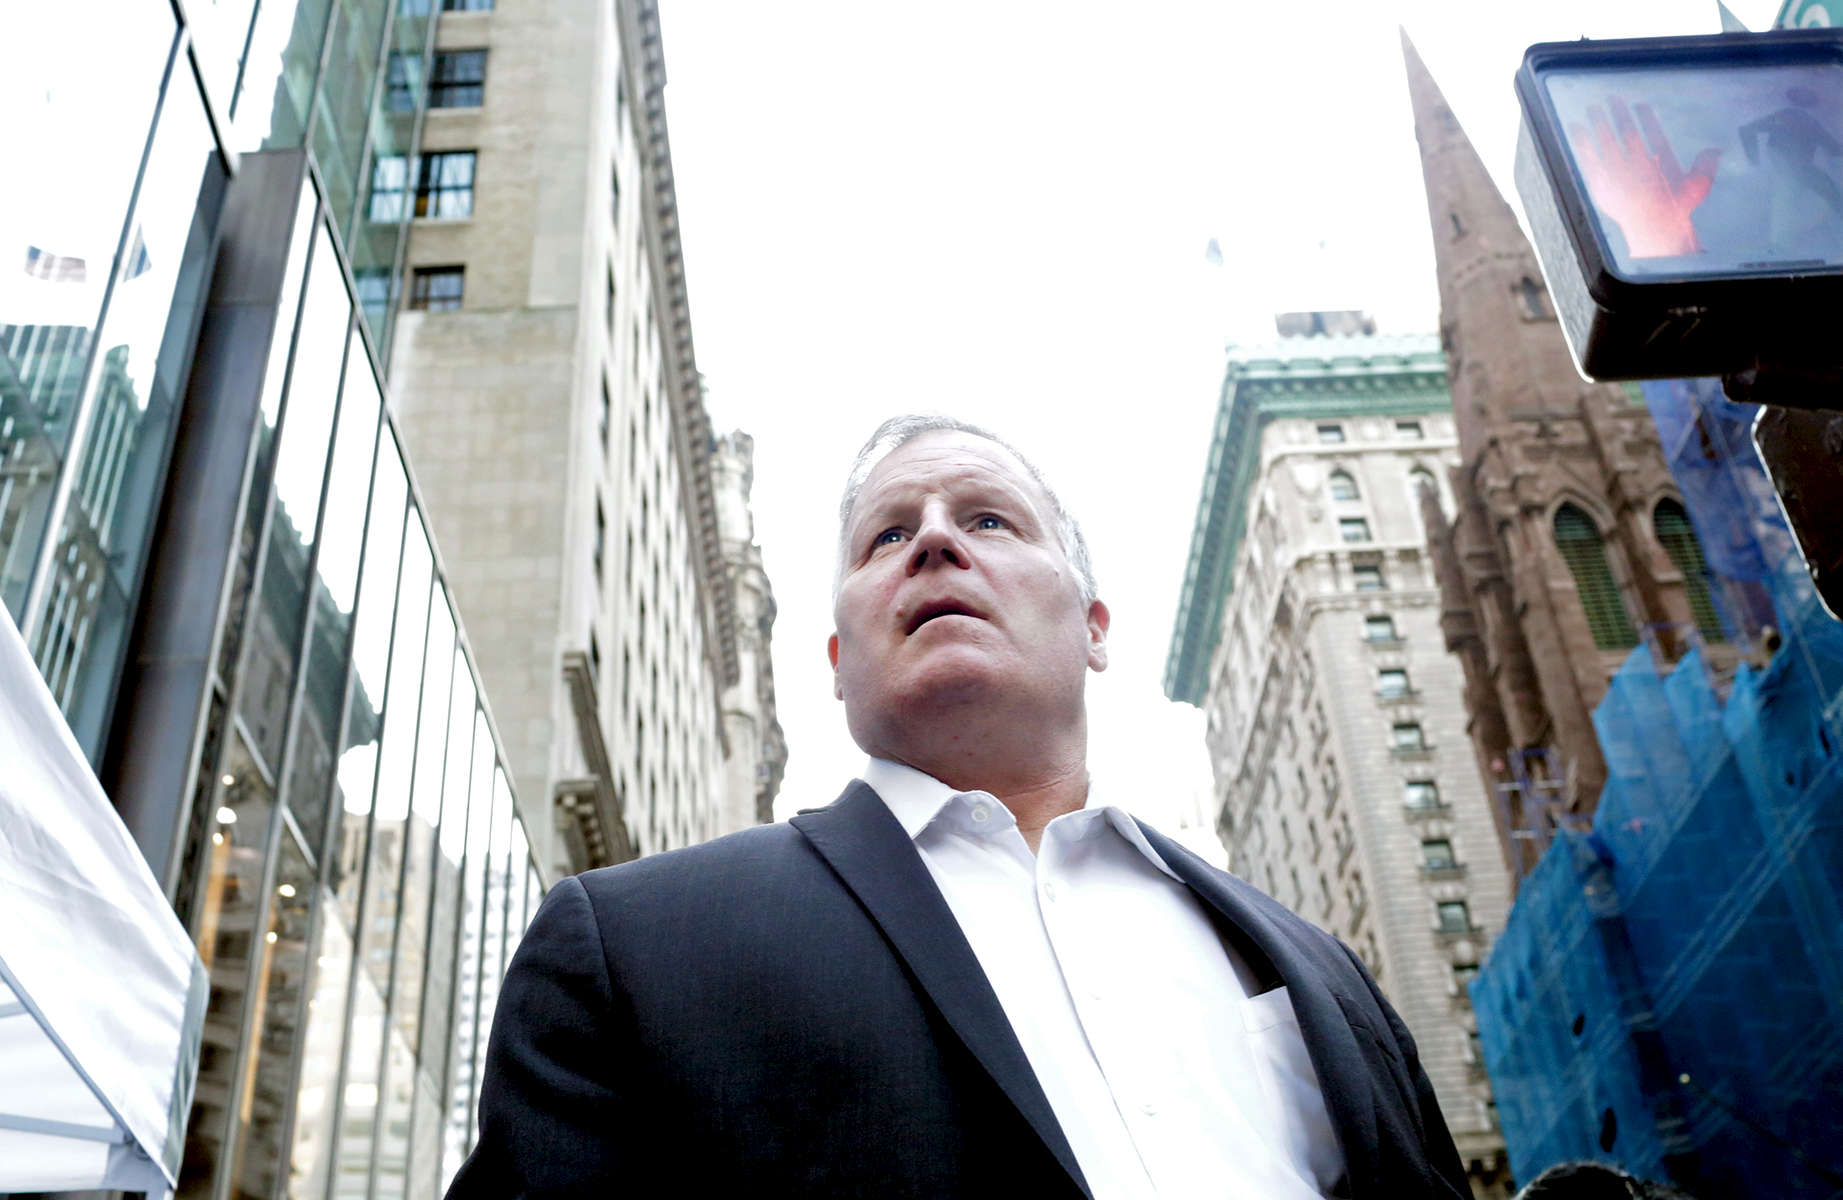 "A man stares up at Trump Tower, the current residence of Republican President elect Donald Trump, in Manhattan, NY on November 28, 2016.-""Trump Gawkers{quote} is a visceral look at what draws people to Trump Tower, the current residence of U.S. President elect Donald Trump. Hoards of people undertake the trek, bearing security and weather roadblocks, to stare, gawk, absorb, record. The magnetism to the tower (and by extension, to the man inside it,) manifests in the sheer numbers of daily visitors, as well as in the fascination etched across their faces. Upon first look, the time so many spend there seems like sport and amusement, but underneath upturned eyes and selfie smiles prevails an undercurrent of anxiety - and not just for those who didn't want Trump in the Oval Office. Some of the electorate that voted against Hillary is now unsure for which version of Trump they voted. People's upward gazes, no matter their political views, seek answers: How could this happen? Or now that it has, what will it mean?"